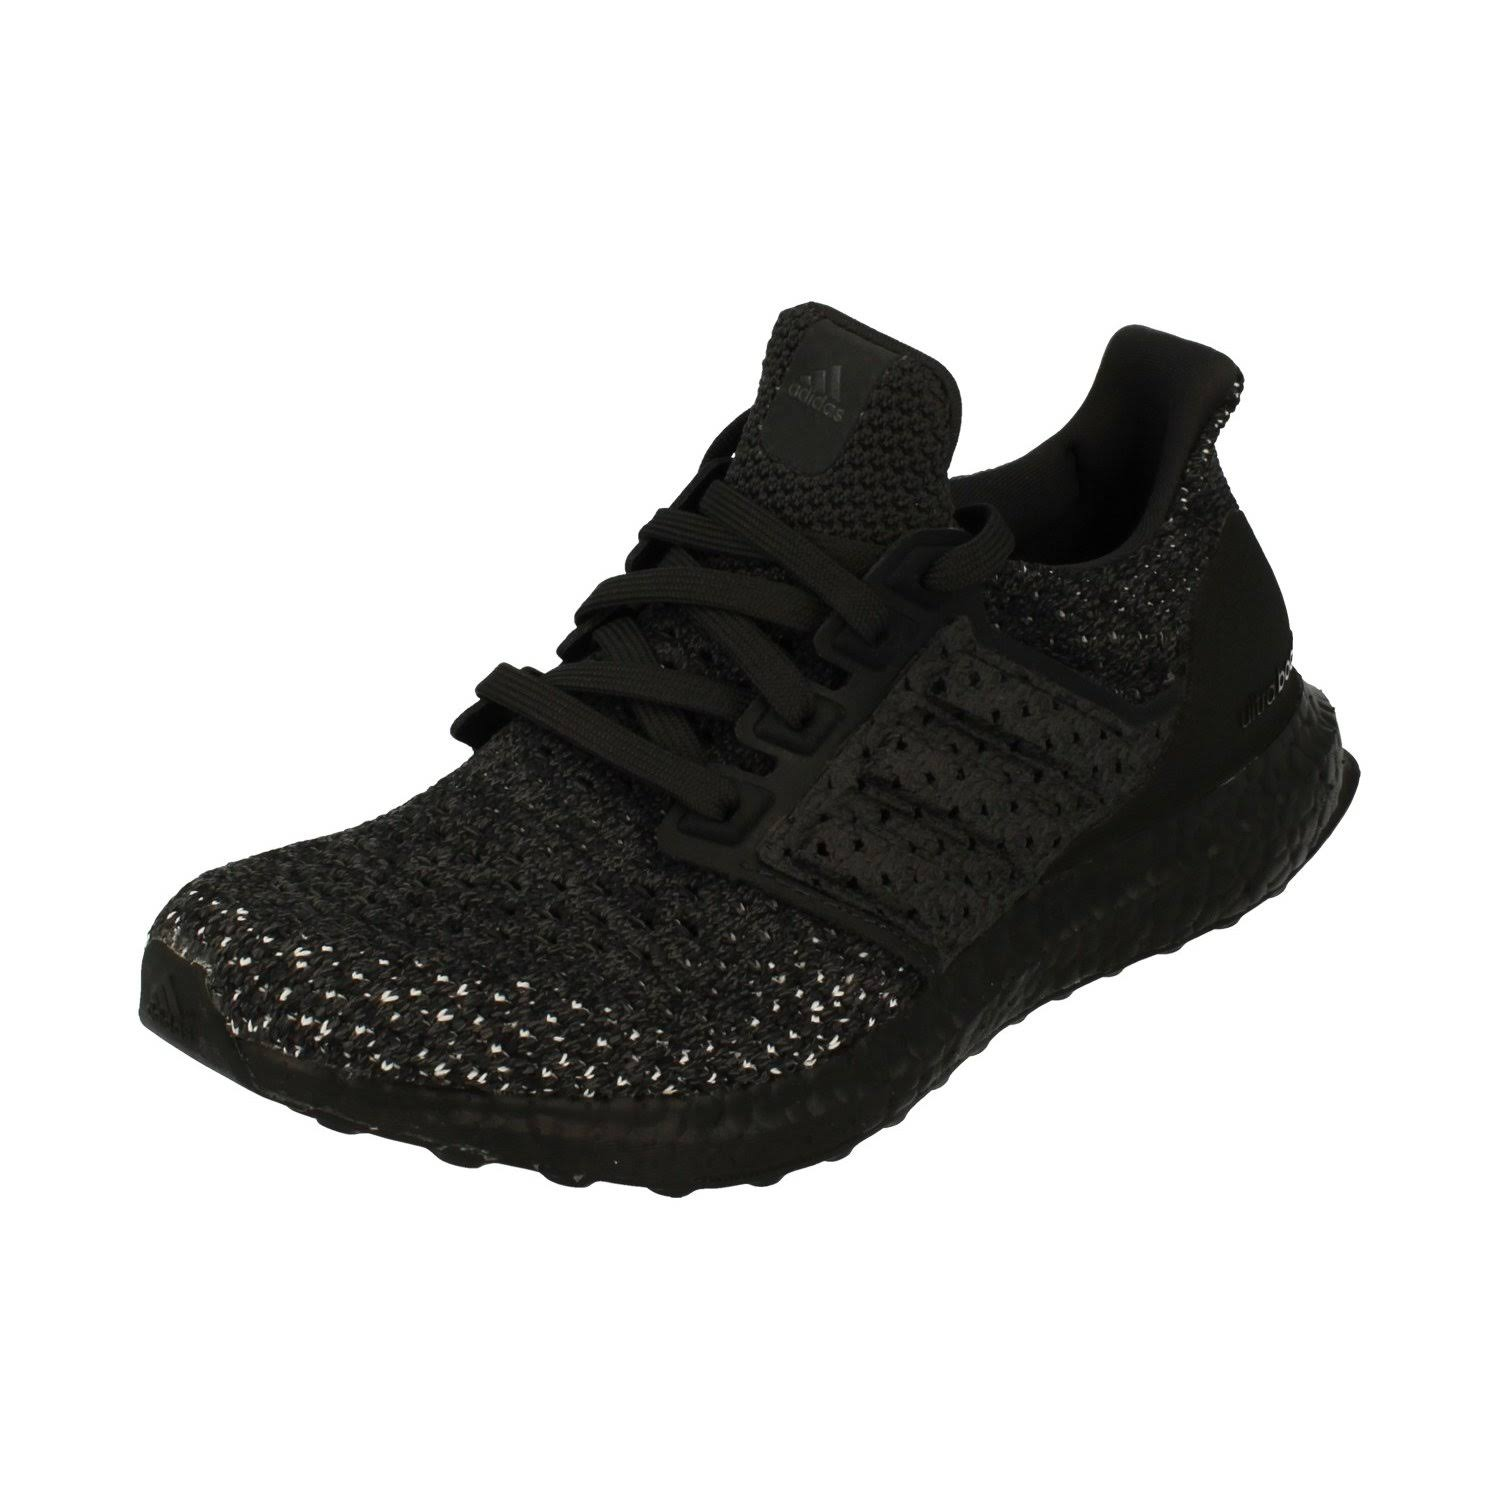 (5.5) Adidas Ultraboost Clima Mens Running Trainers Sneakers